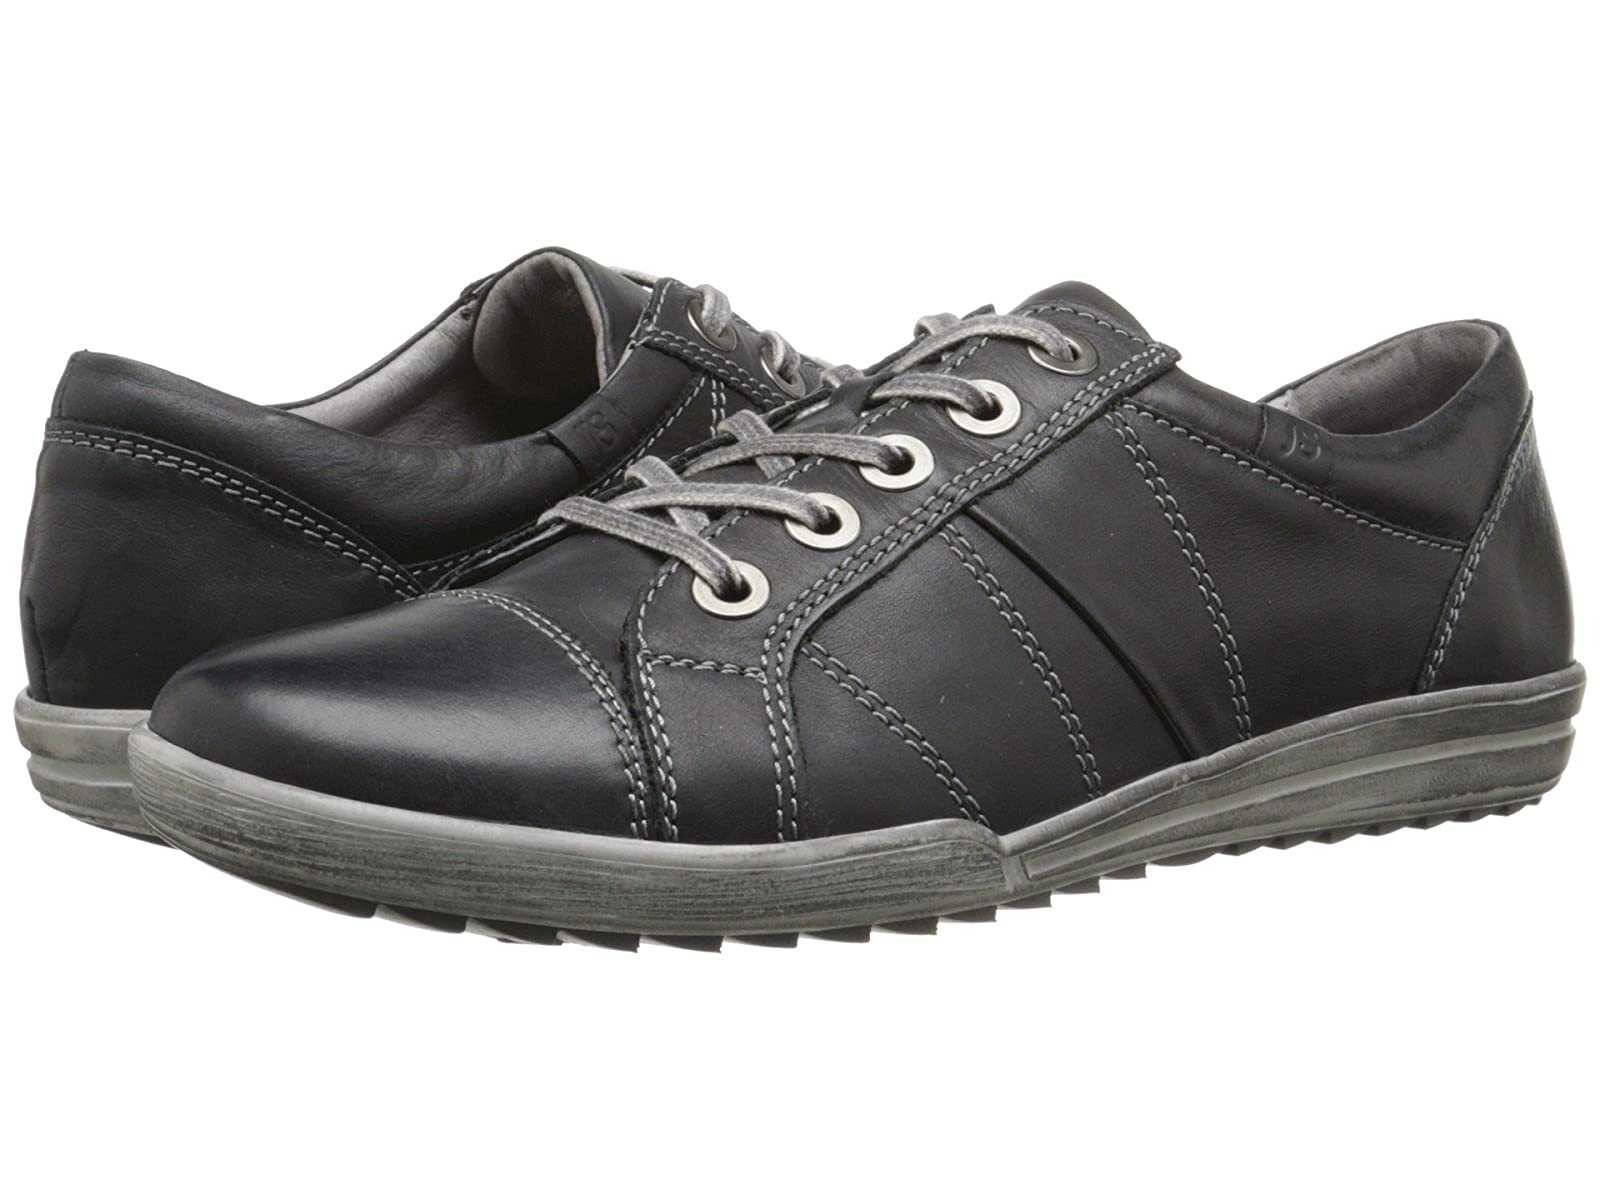 Josef Seibel Dany 05Cheap and distinctive eye-catching shoes